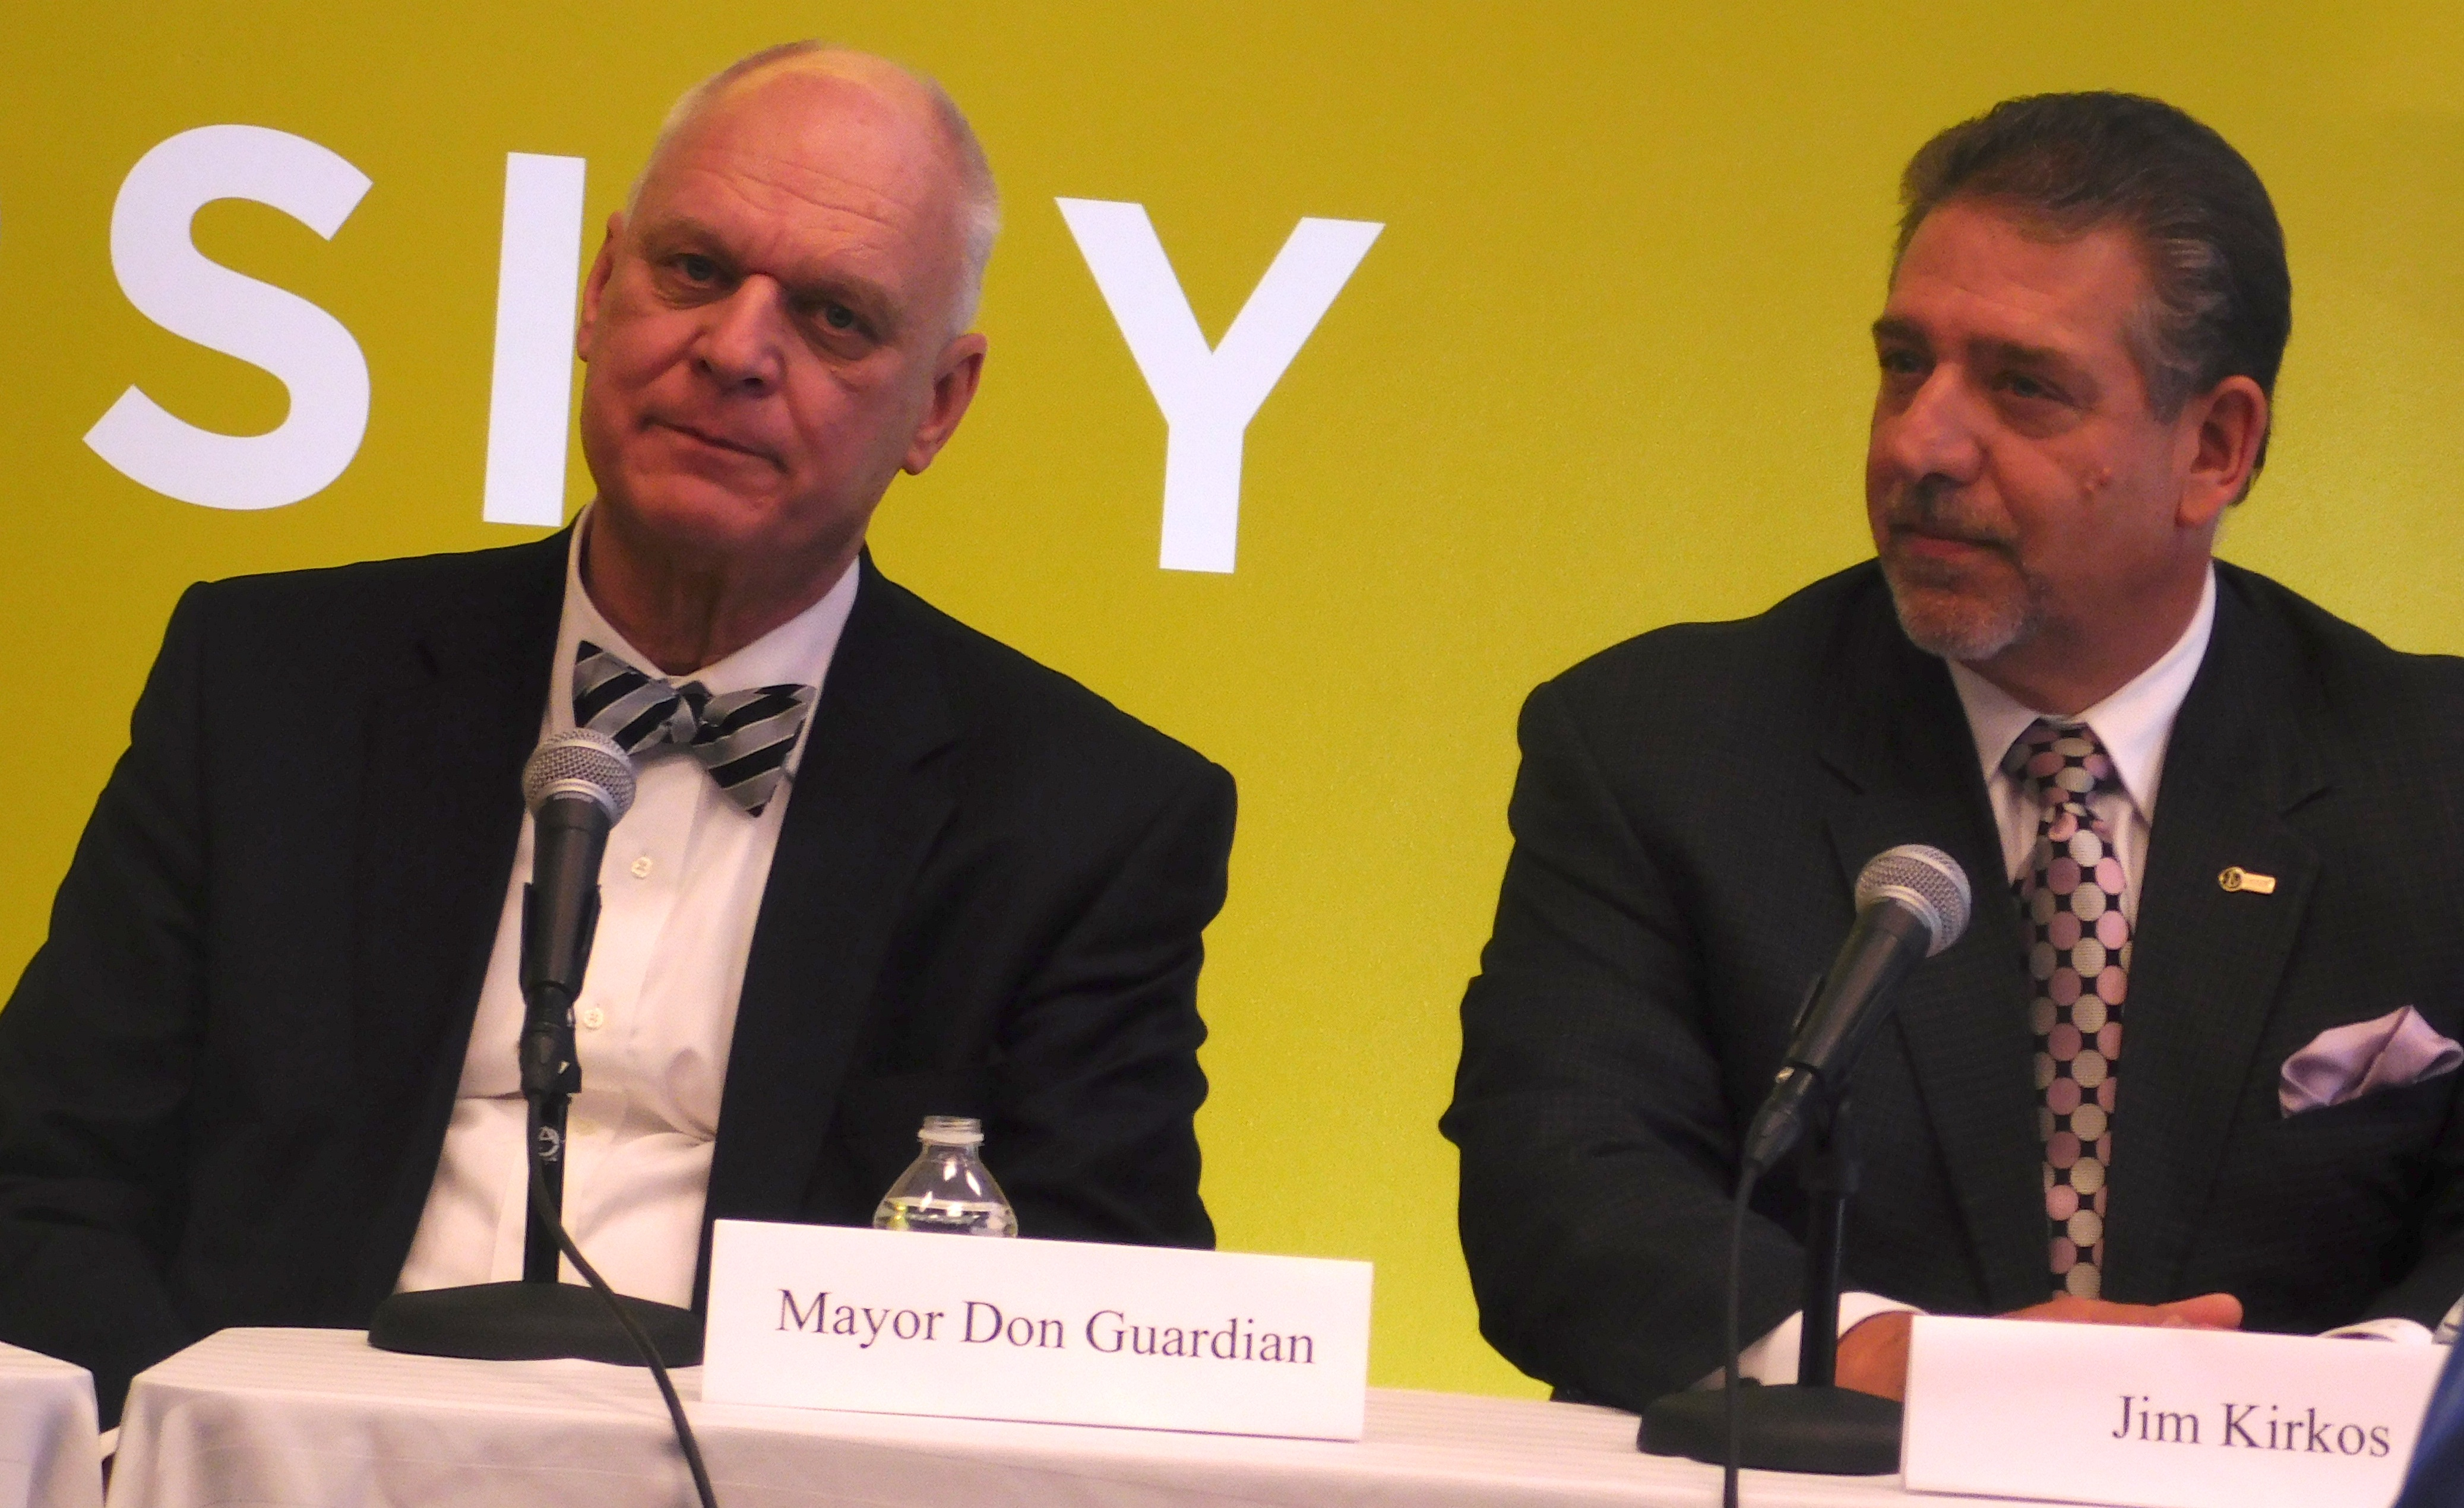 Guardian and Kirkos were on a panel about Jersey City expansion.